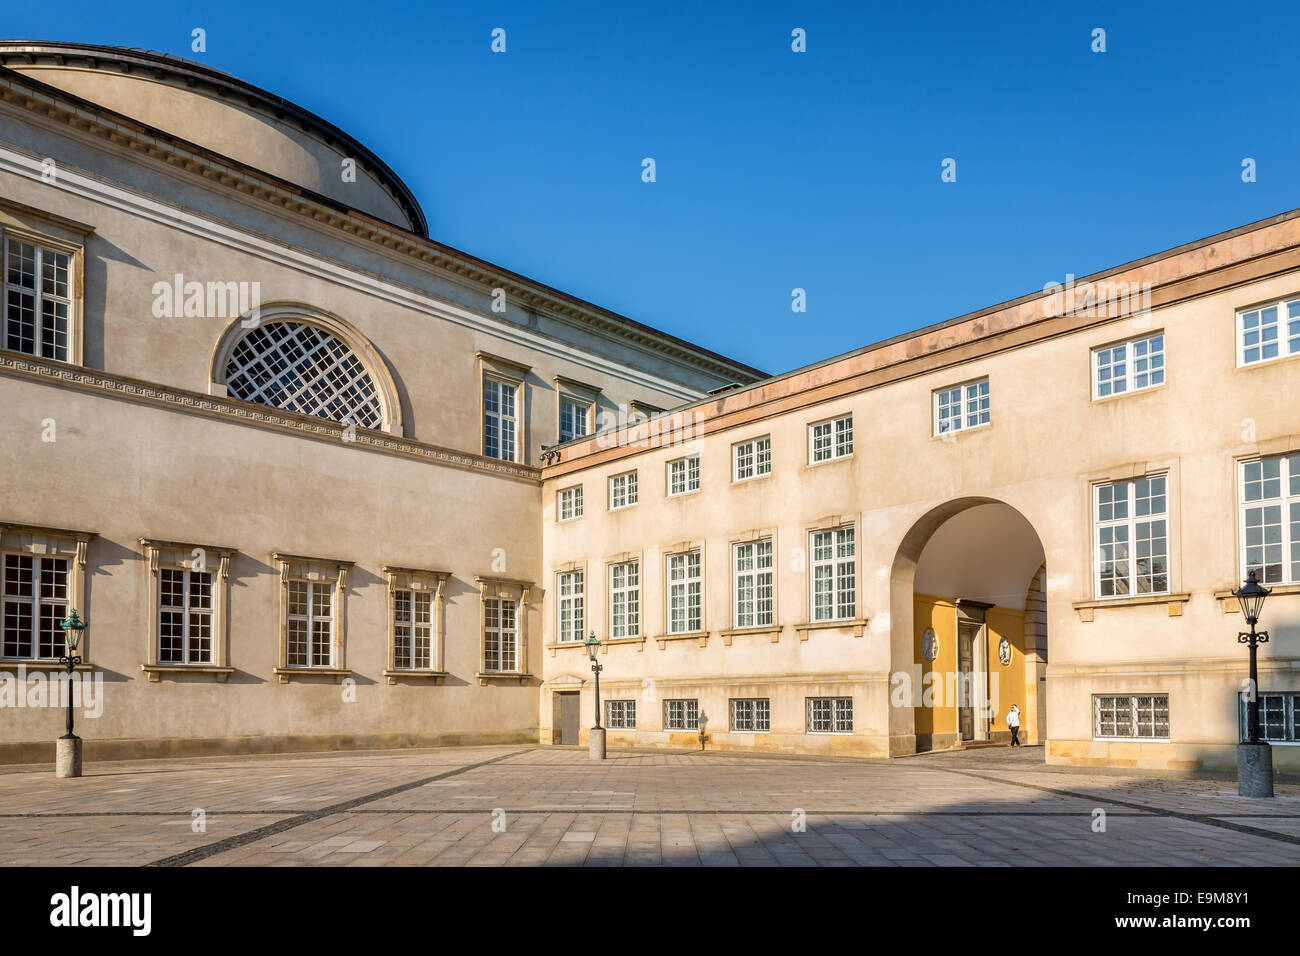 Prince Jørgens Courtyard, Christiansborg Castle and The Palace Chapel behind, Copenhagen, Denmark - Stock Image